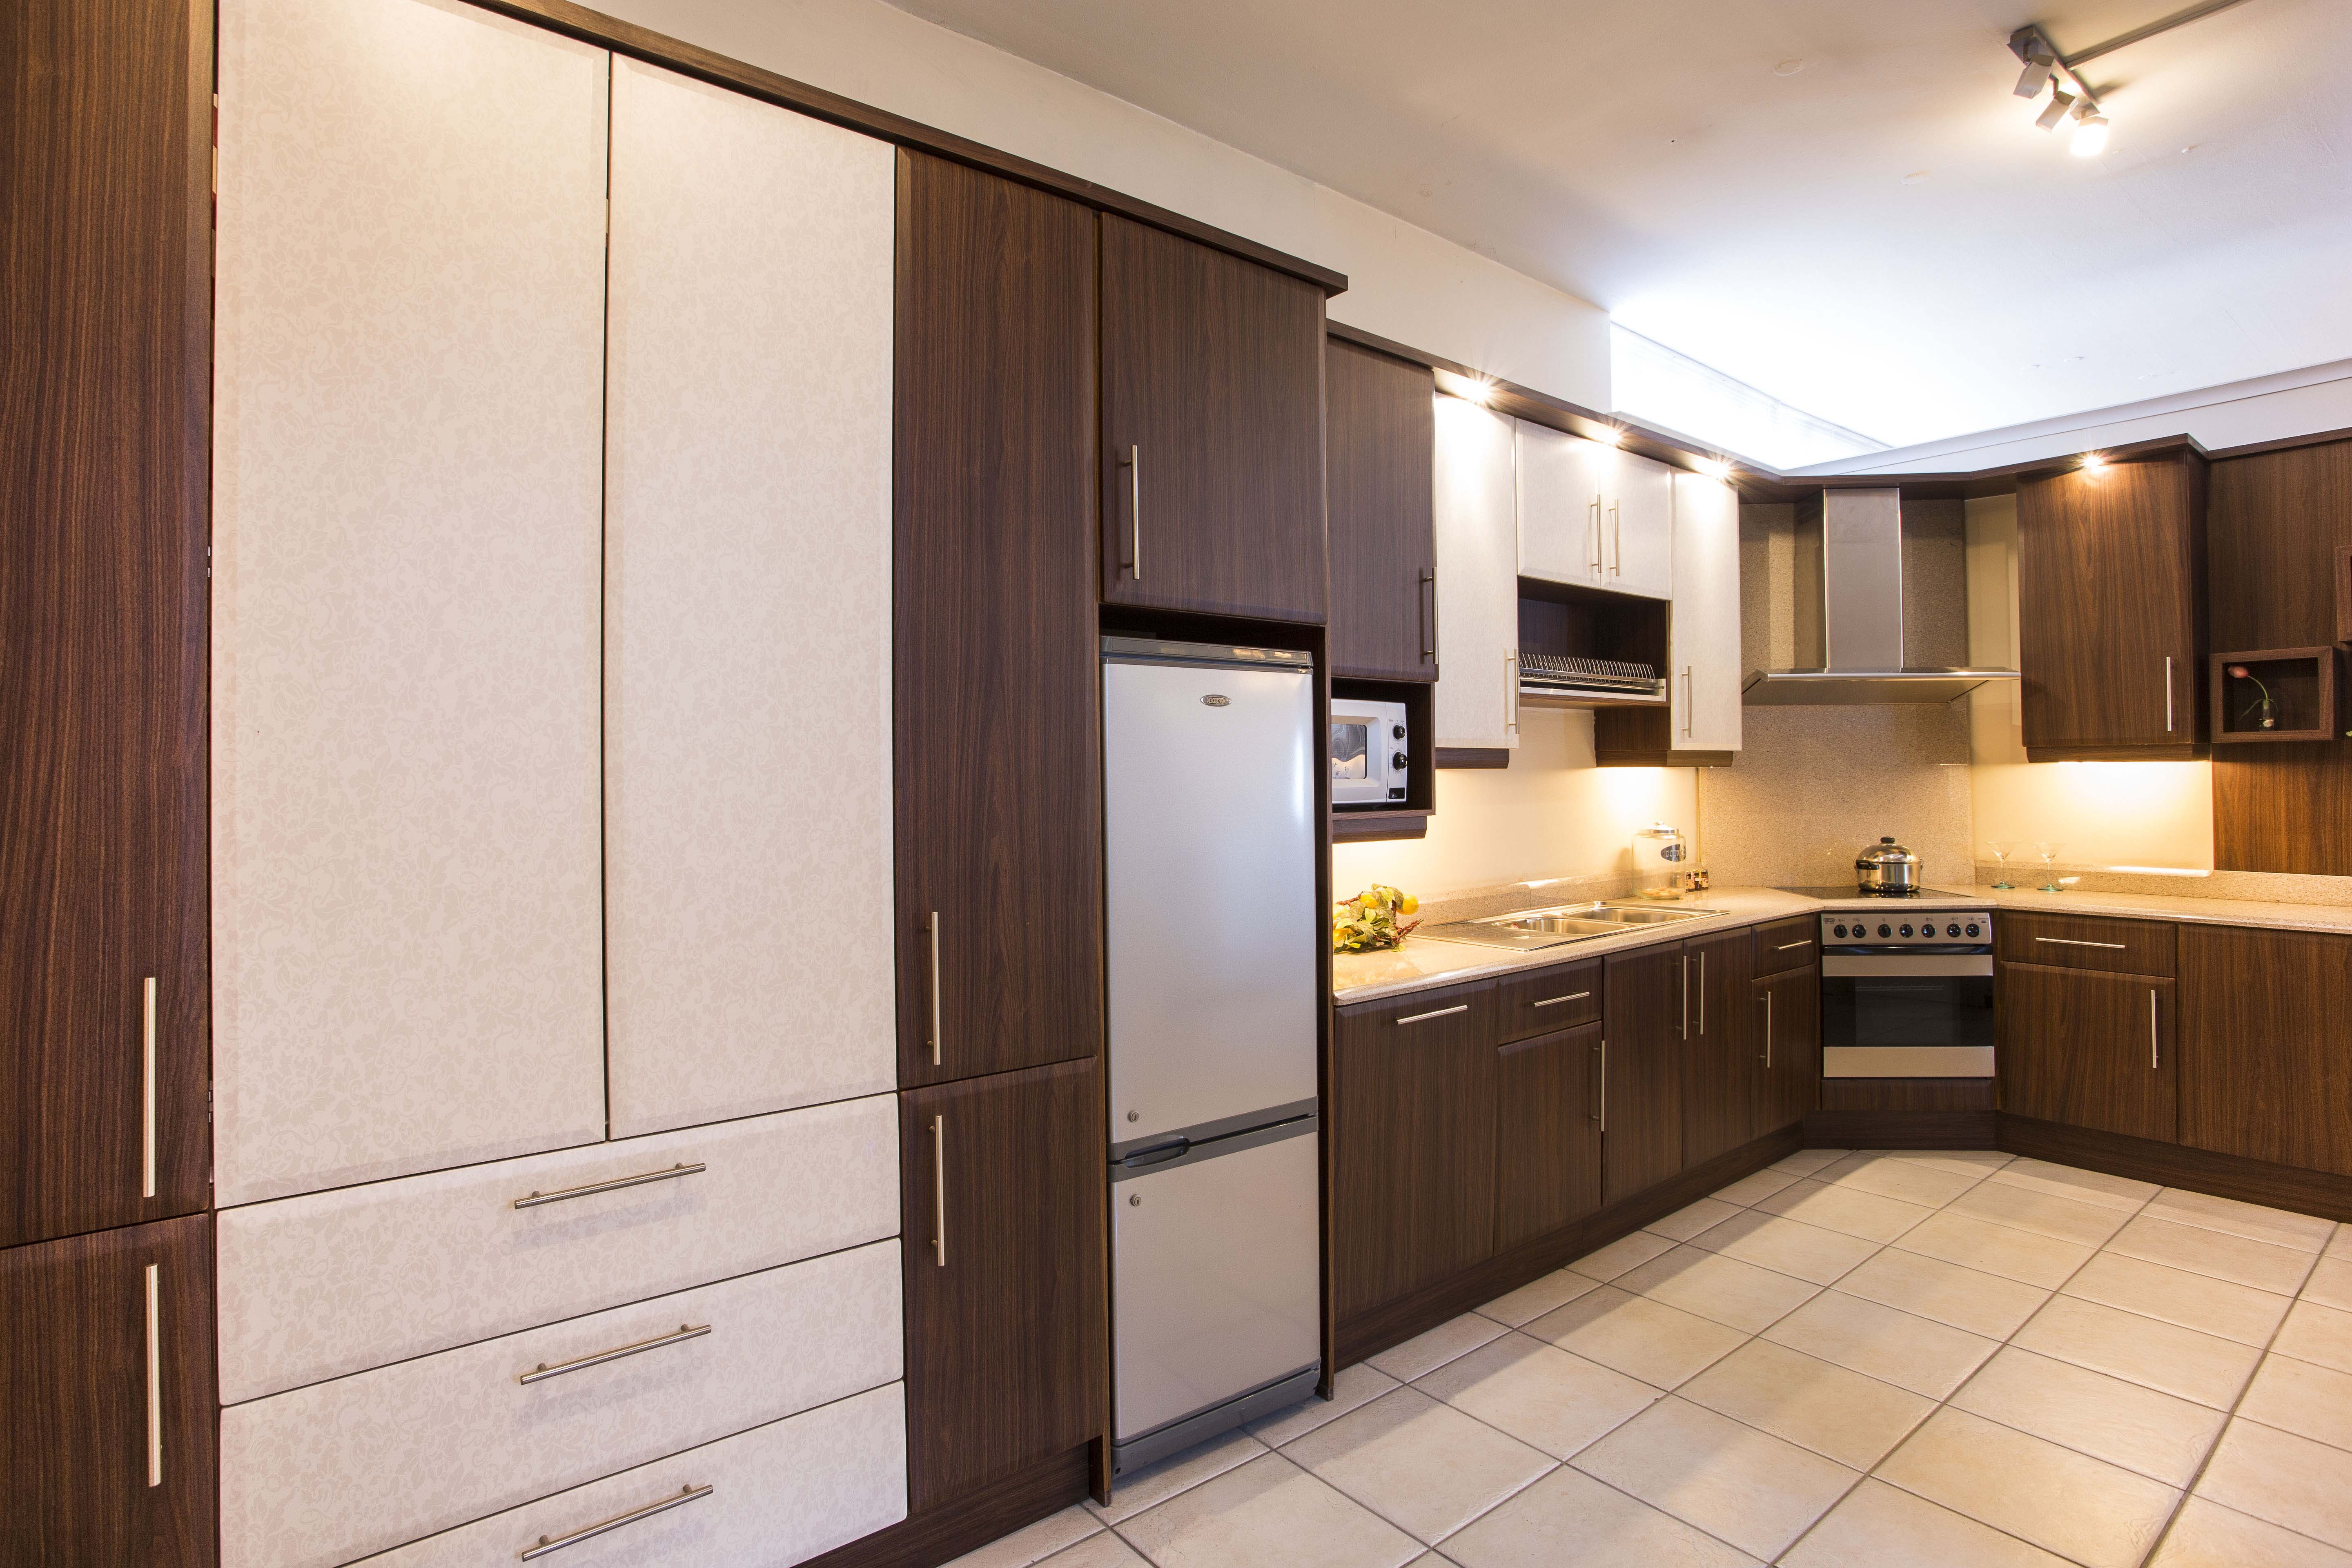 Outstanding Kitchen Designs Umhlanga Pictures - Simple Design Home ...